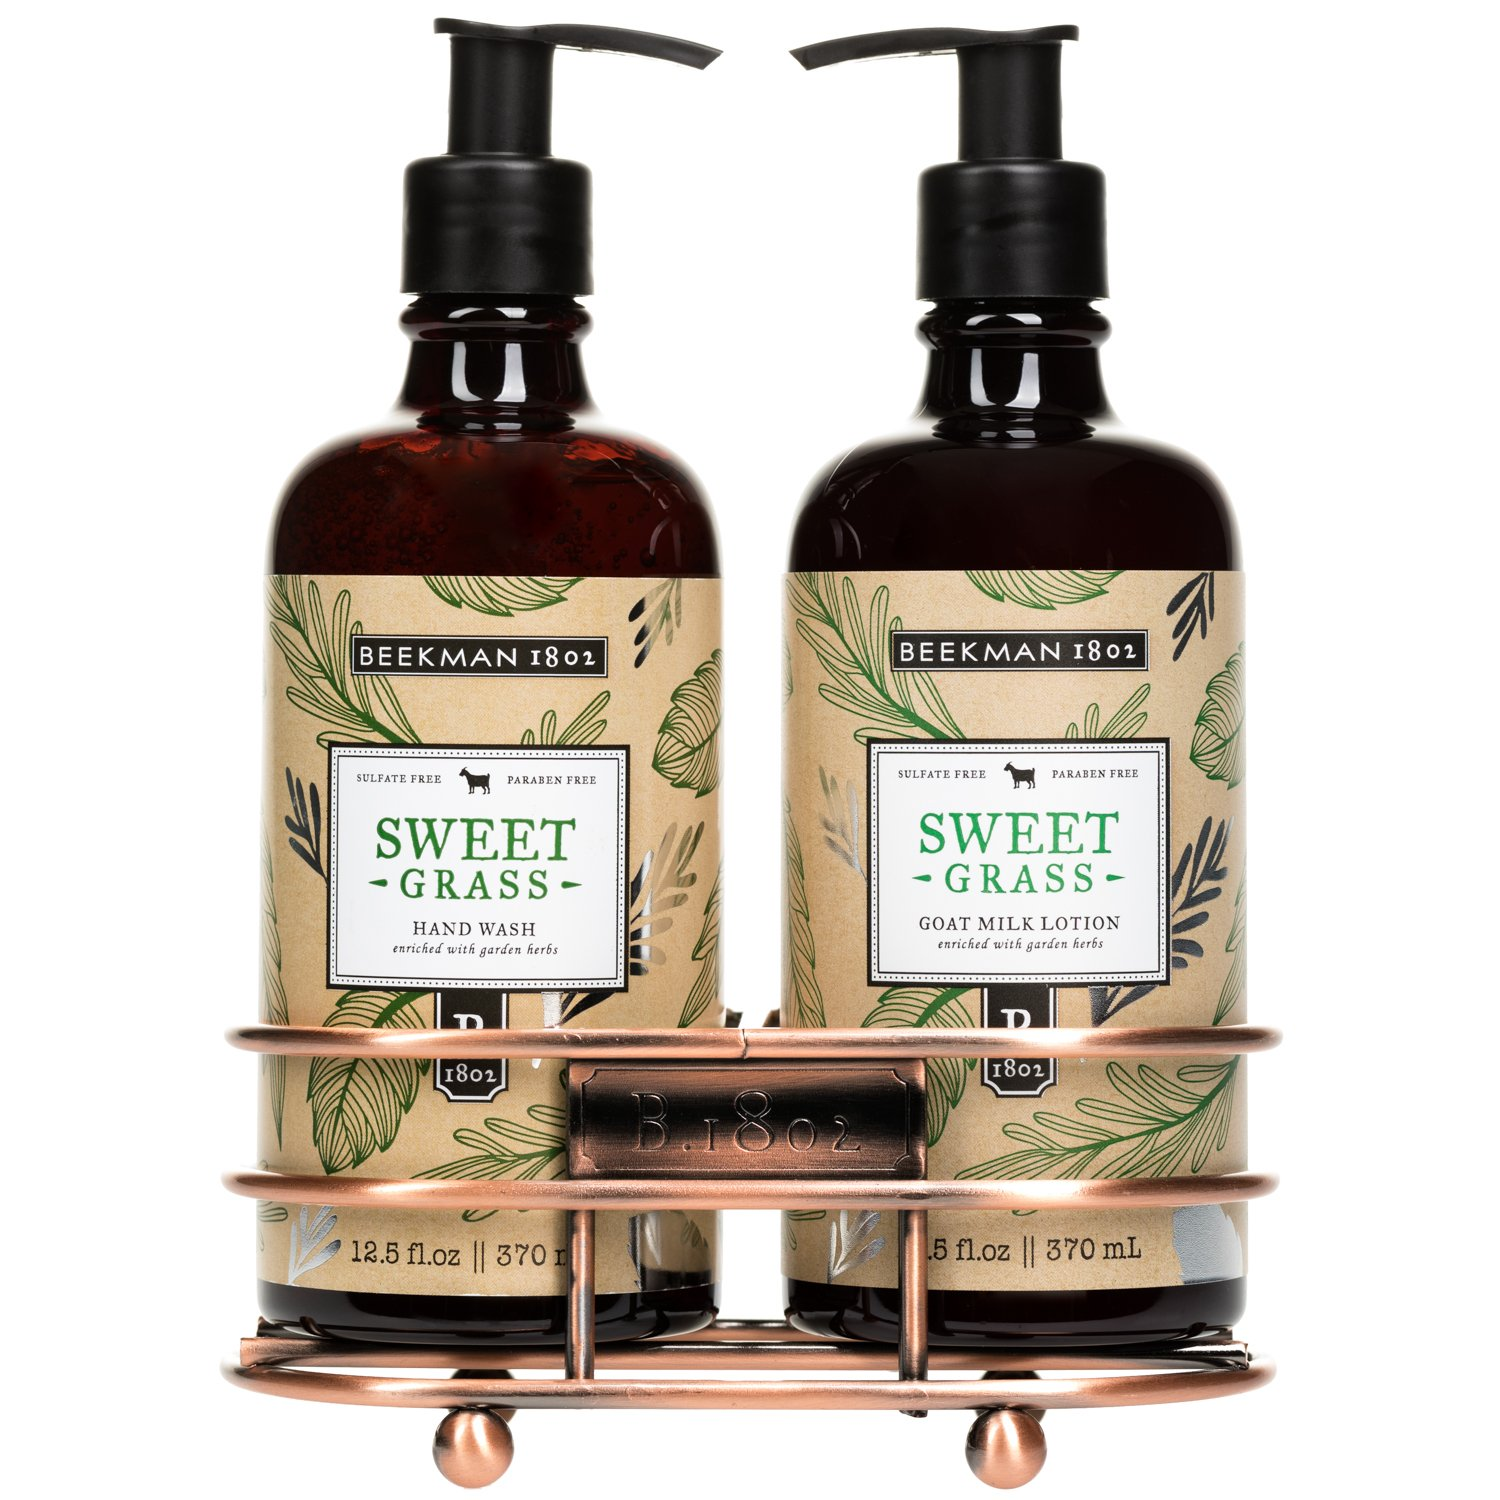 Sweet Grass Hand Care Duo Caddy Set